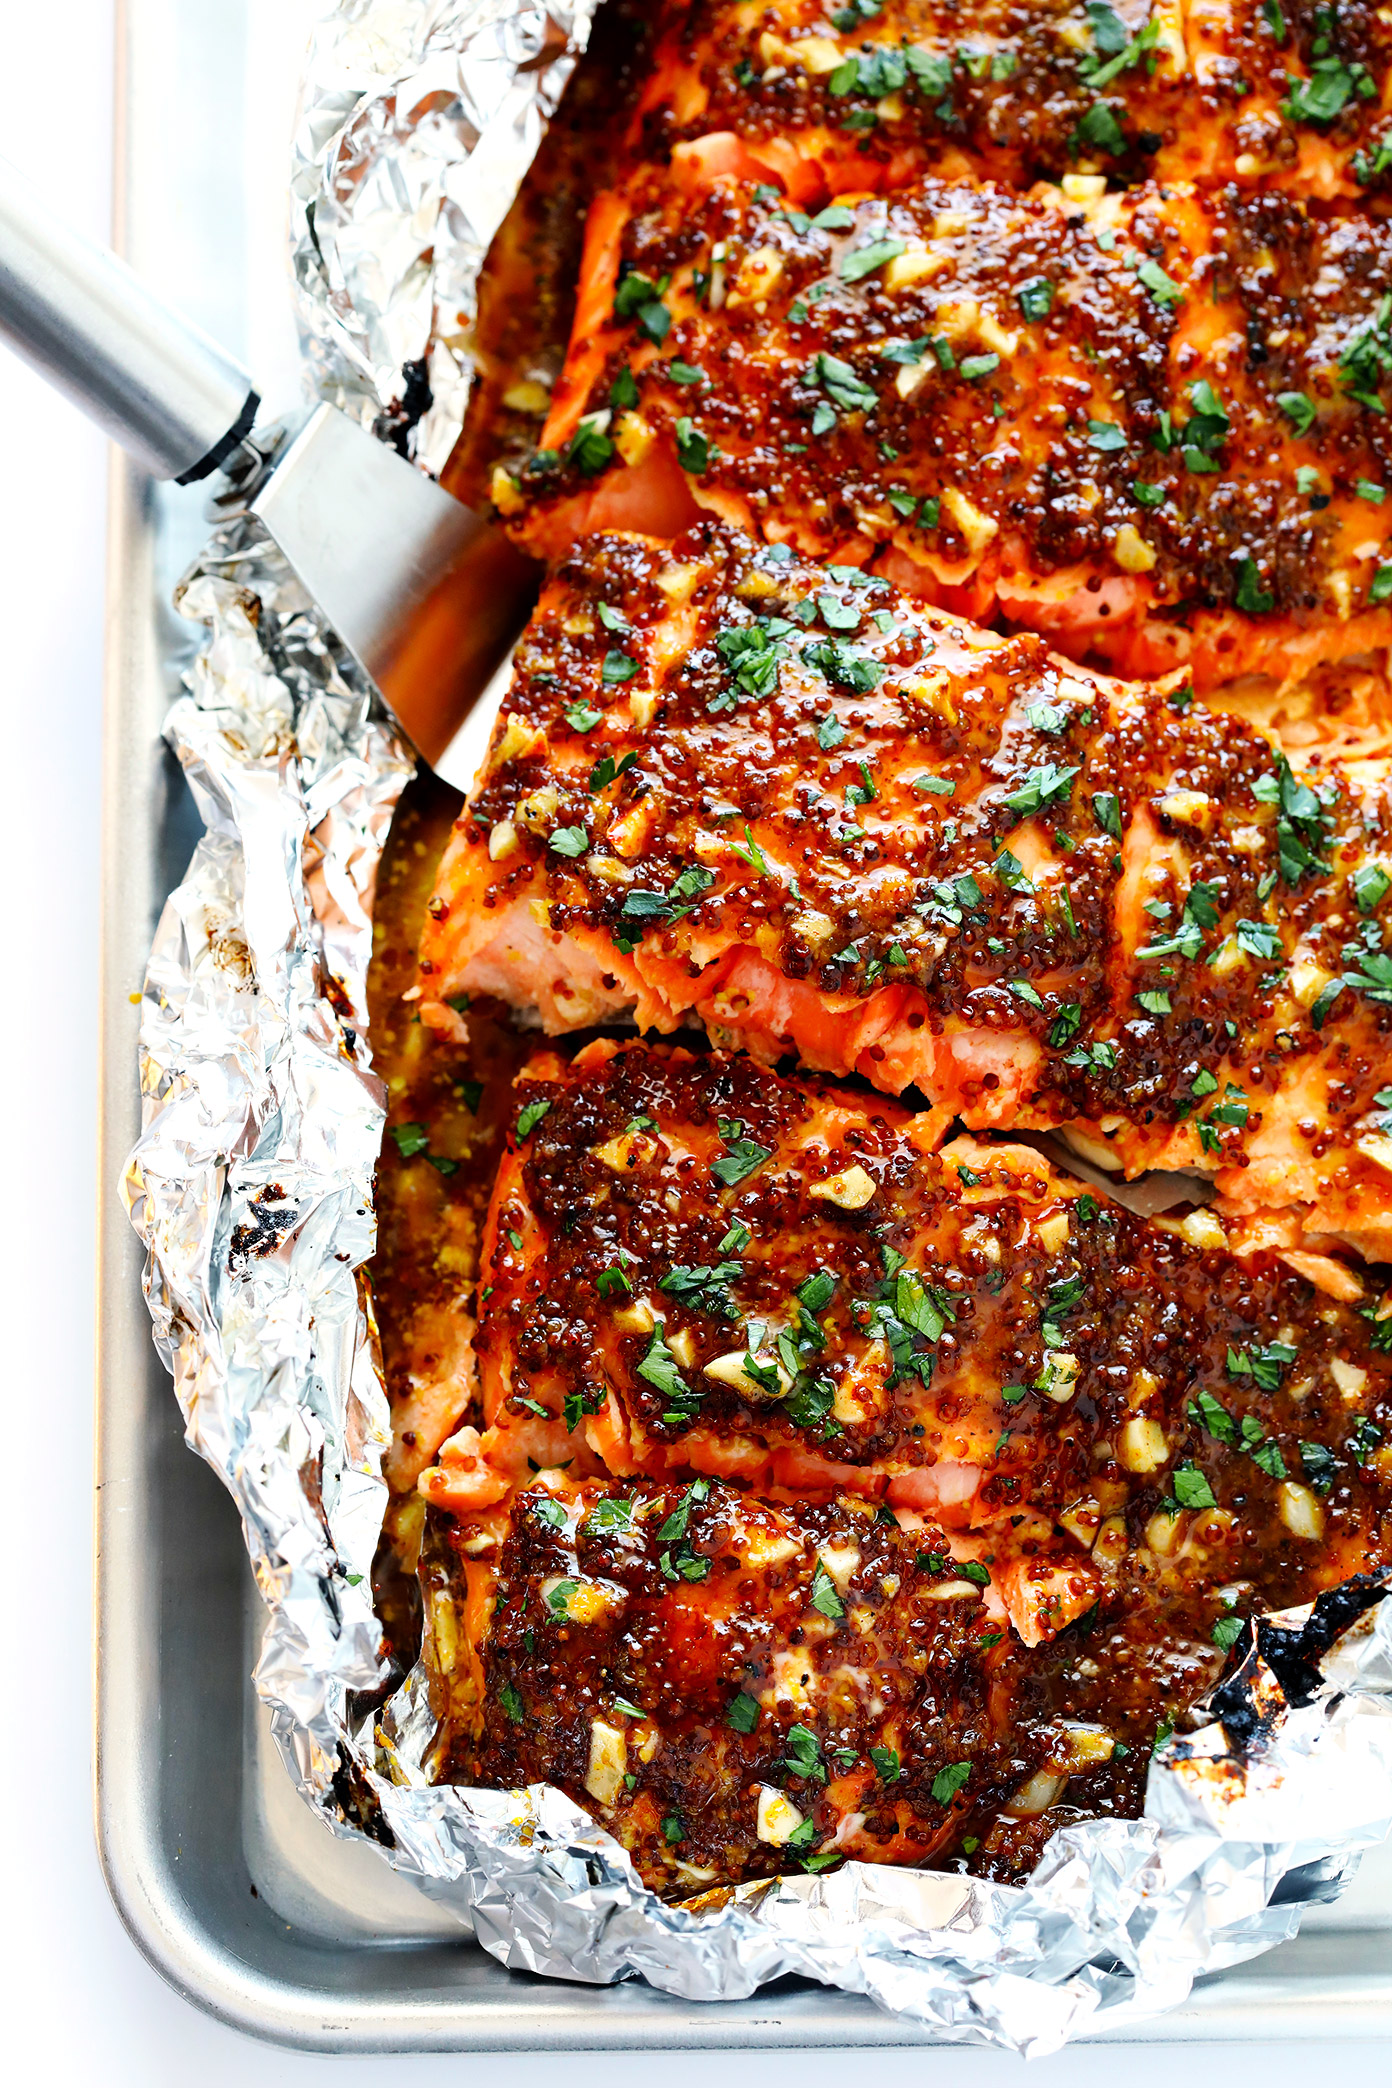 Honey mustard salmon in foil recipe 6 1